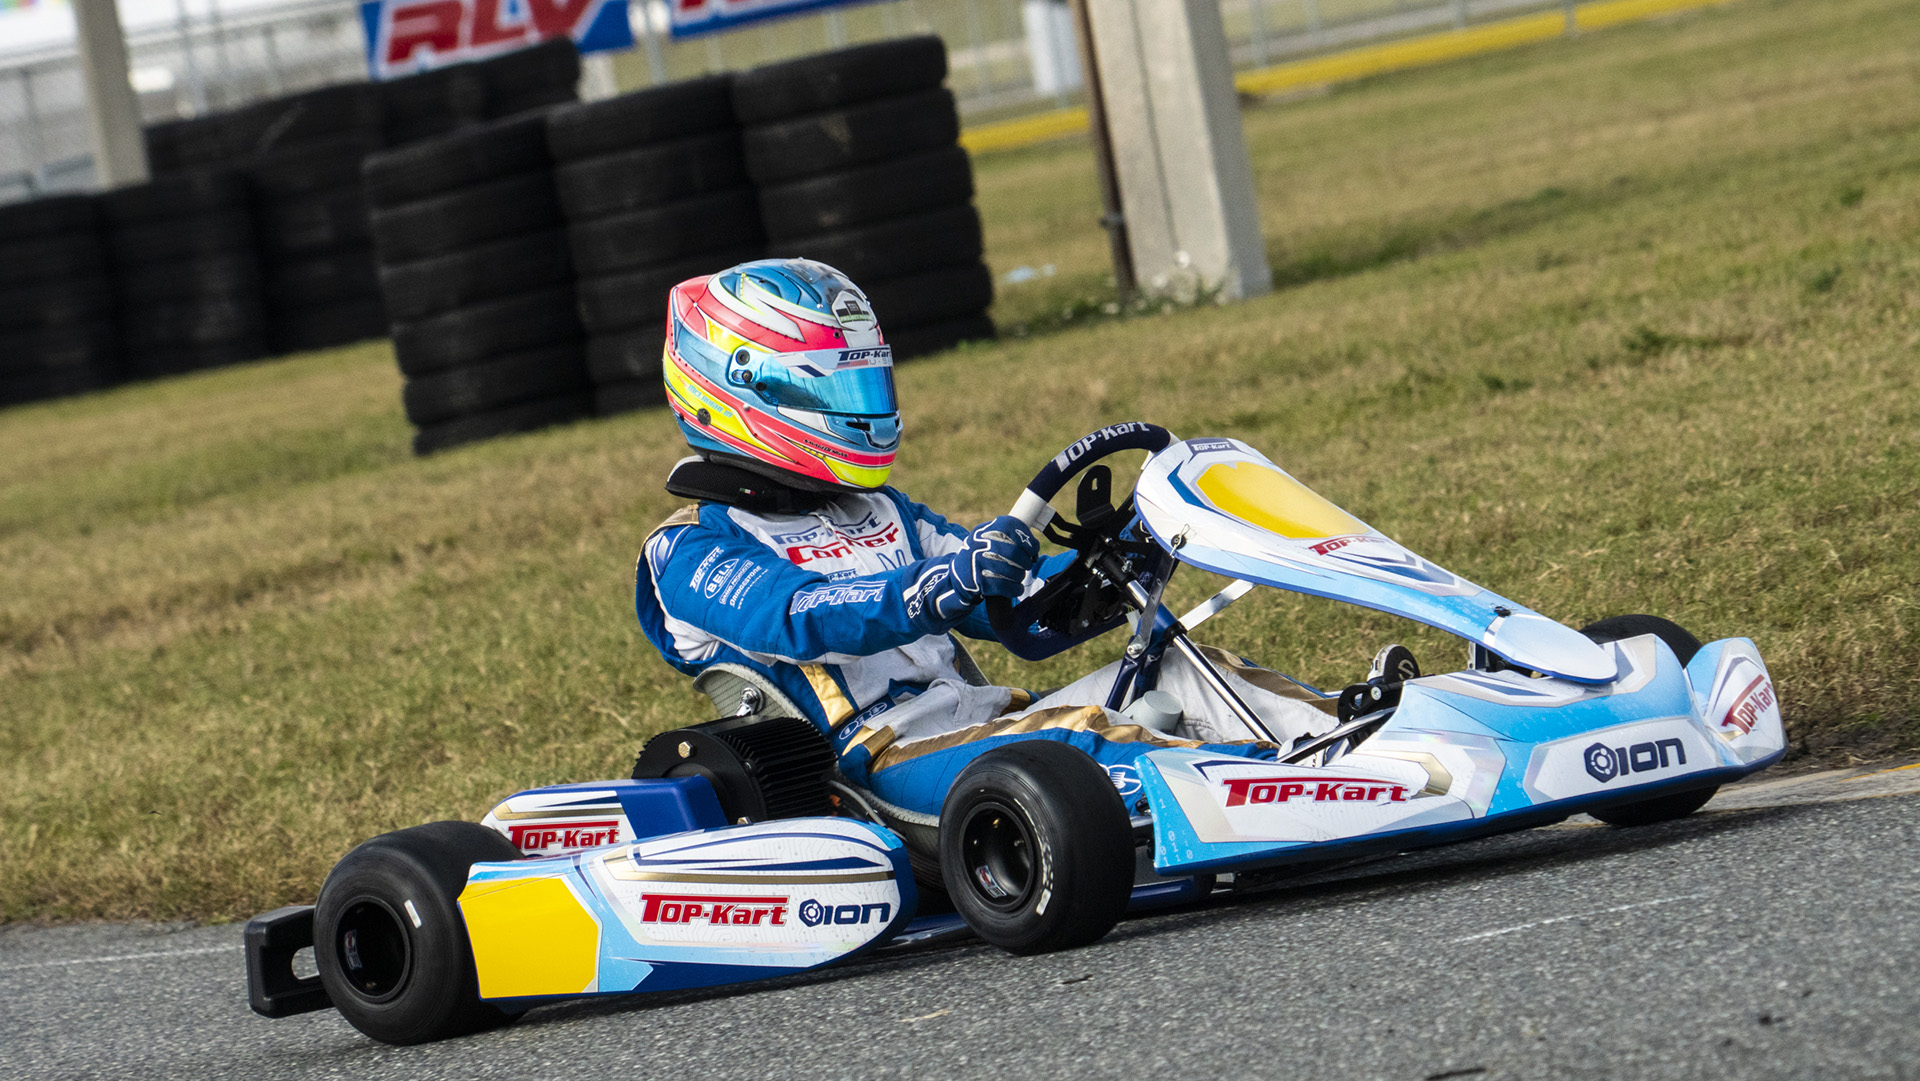 TOP KART USA IN FINAL DEVELOPMENT STAGES OF COMPETITION EV ION PACKAGE